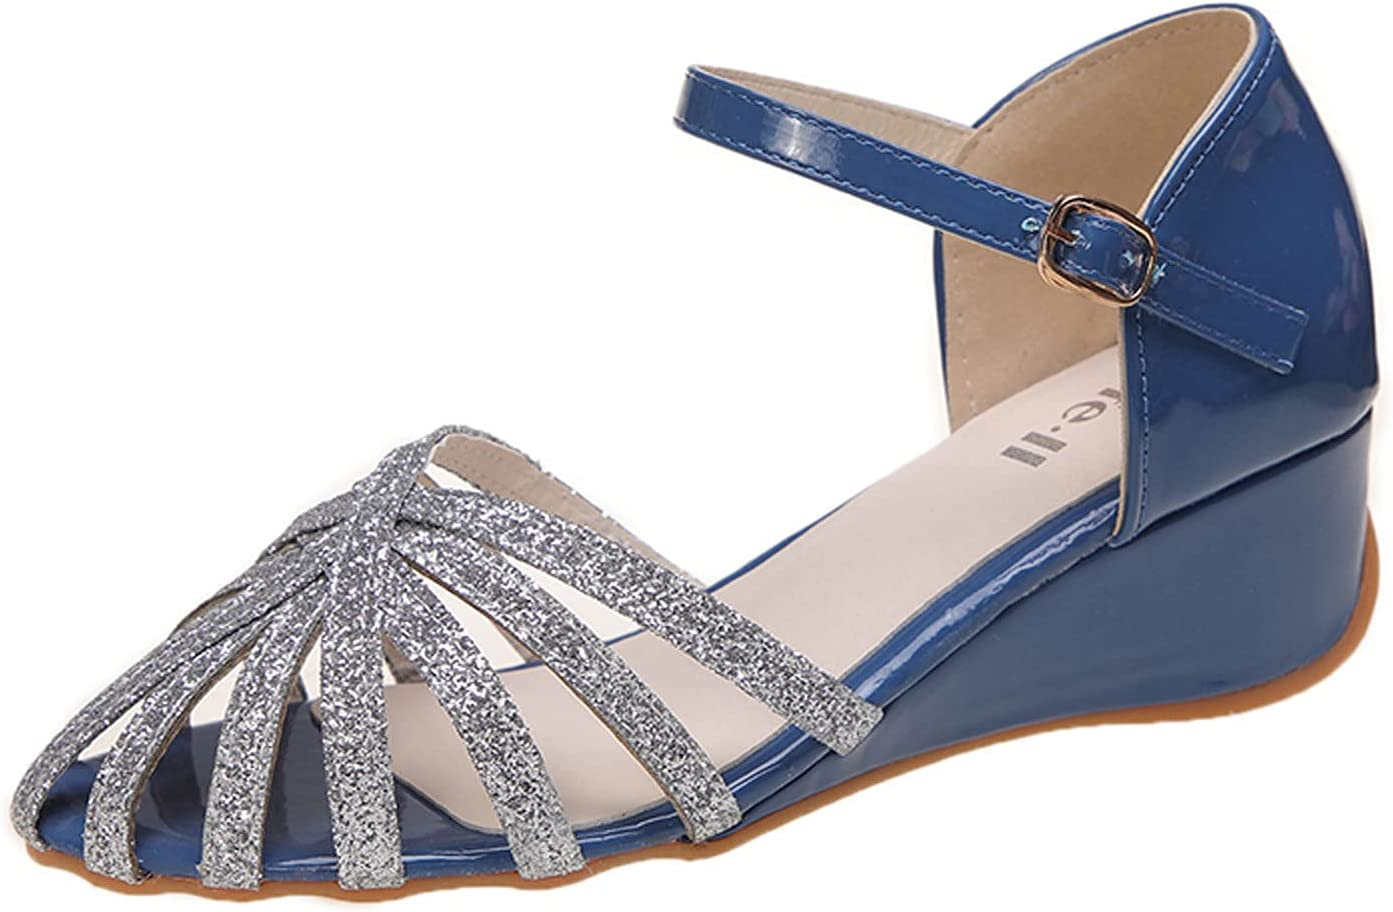 Fashion Women Sandals Wear Lazy Casual OFFicial store Summer At the price S People Plus-Size